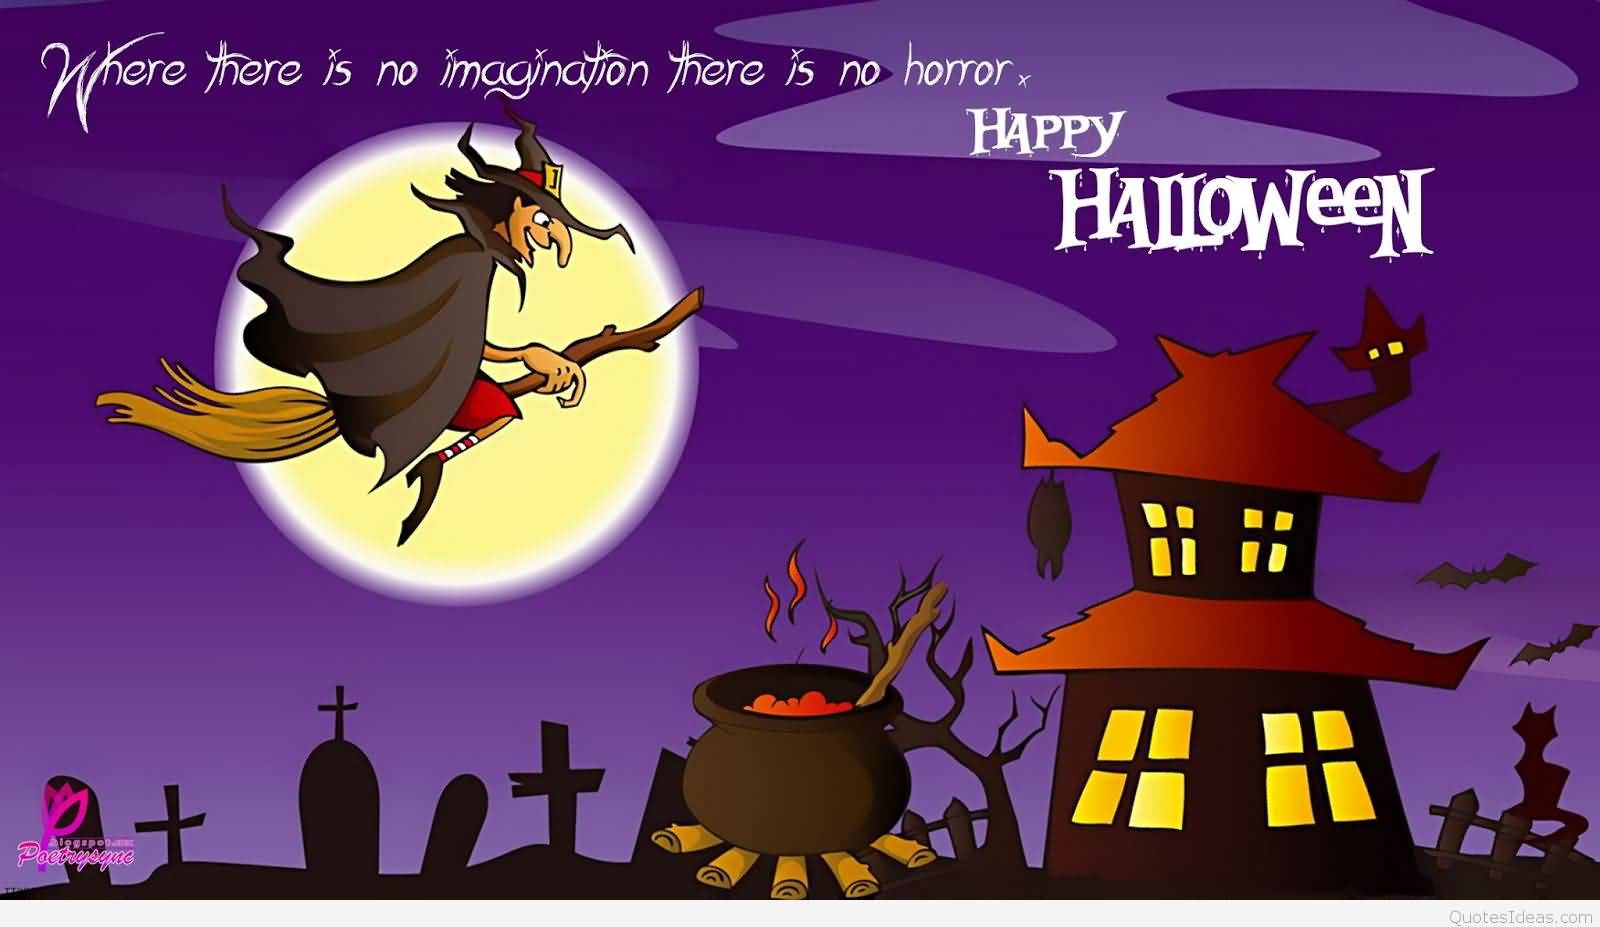 Beau Where There Is No Imagination There Is No Humor Happy Halloween Greeting  Ecard